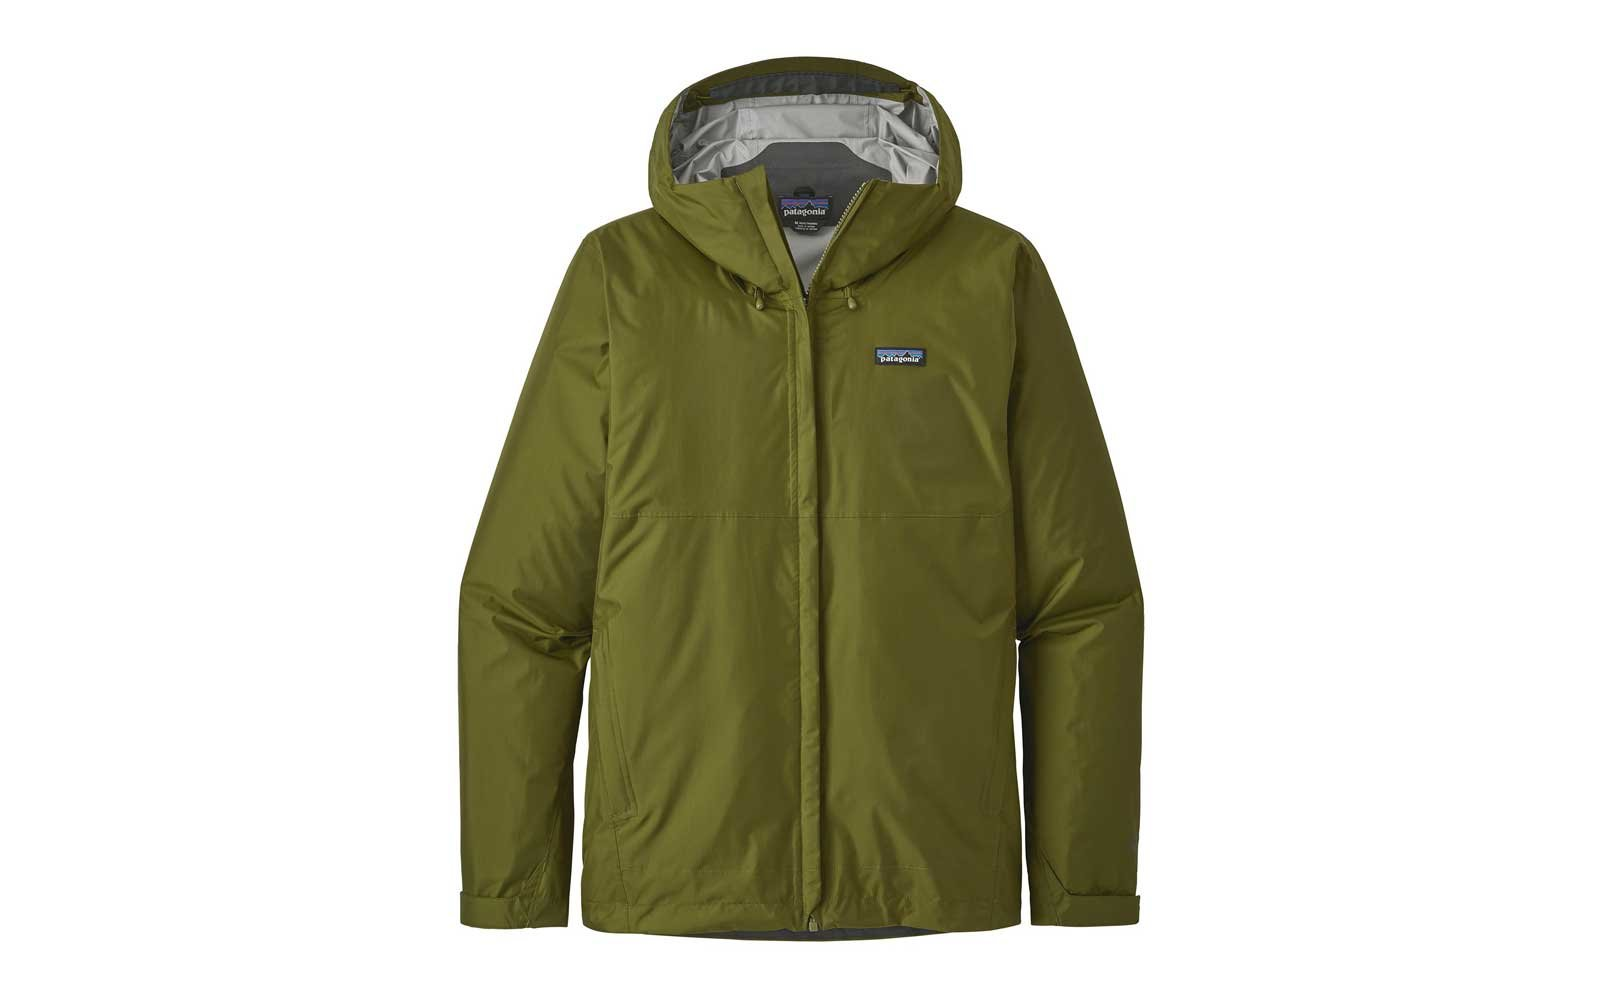 patagonia packable rain jacket